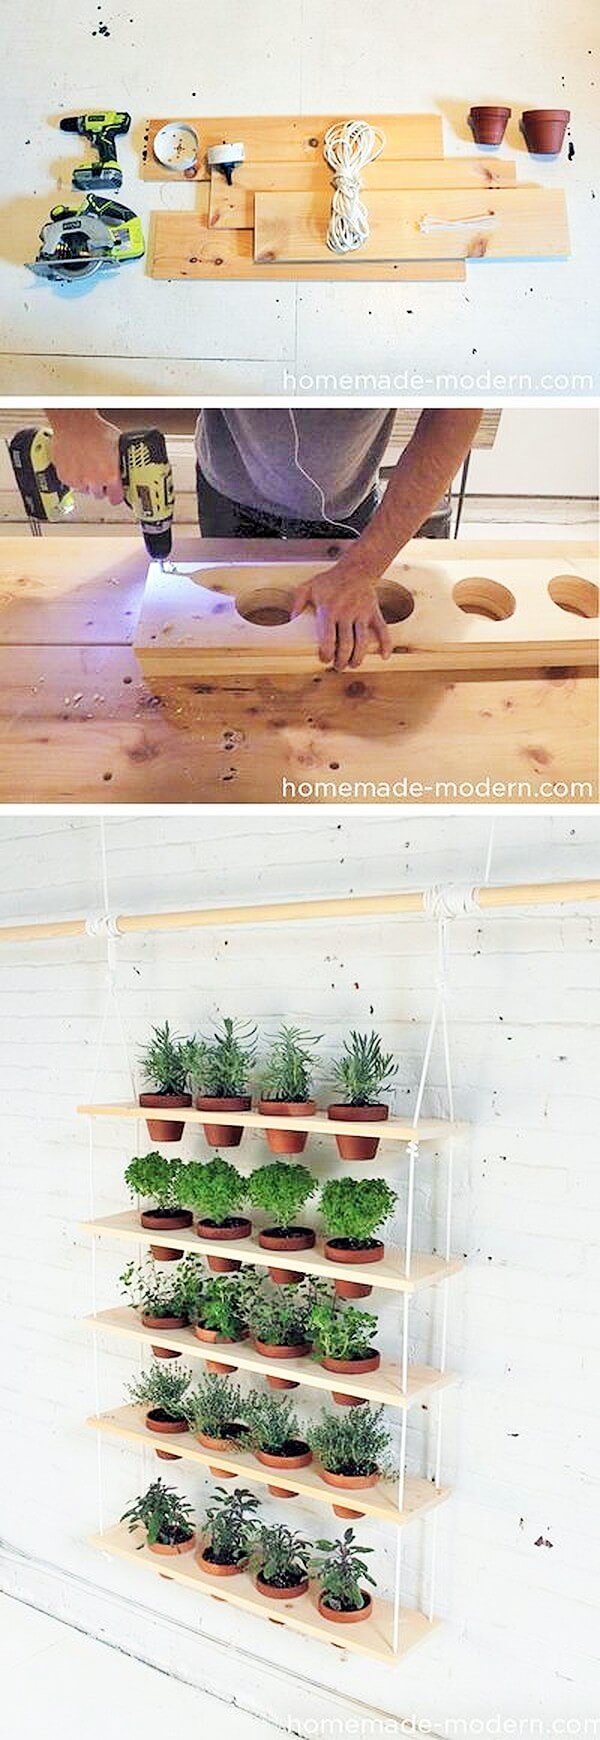 DIY-vertical-garden-ideas-5